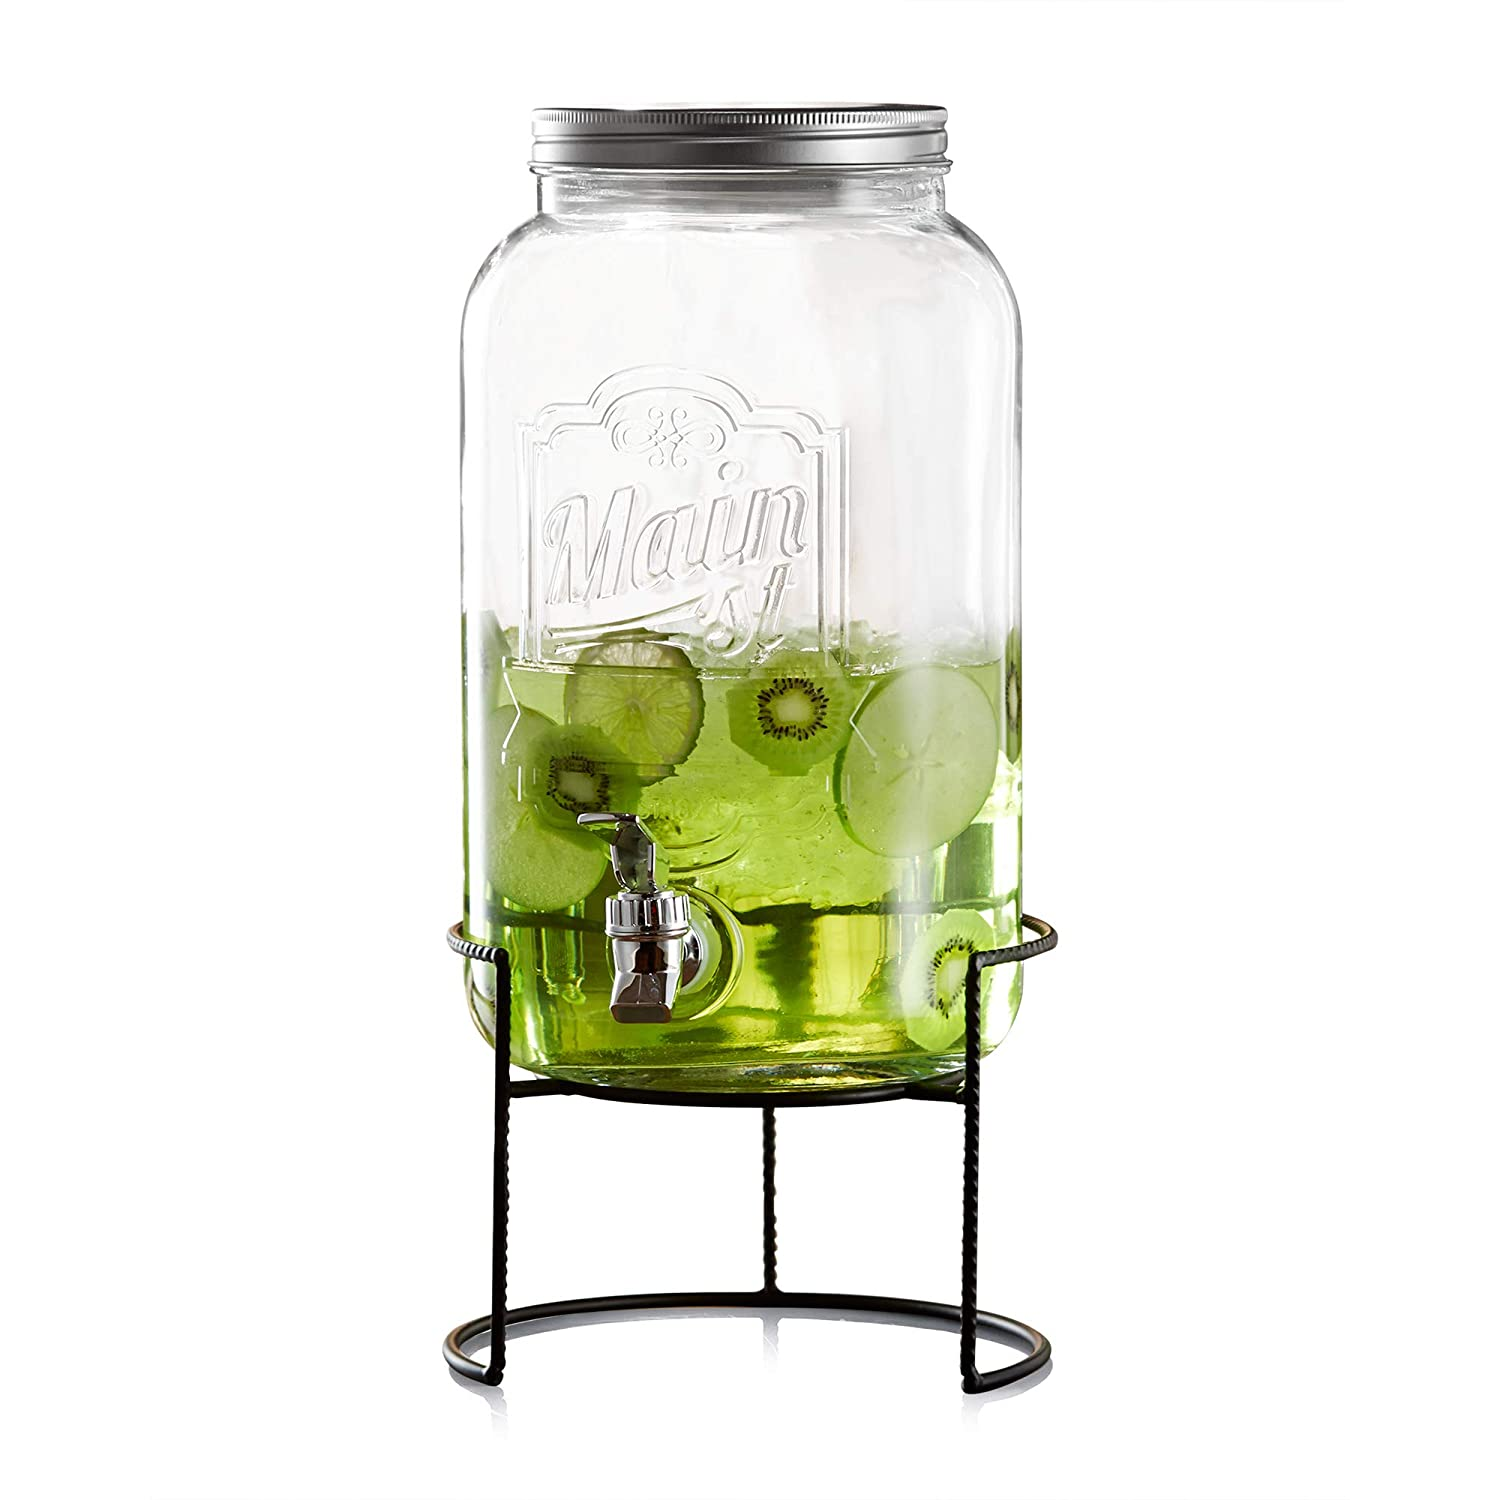 "Style Setter Main Street 210260-GBR 2 Gallon Glass Beverage Drink Dispenser with Metal Stand & Lid 8.5x13.5"" Clear"